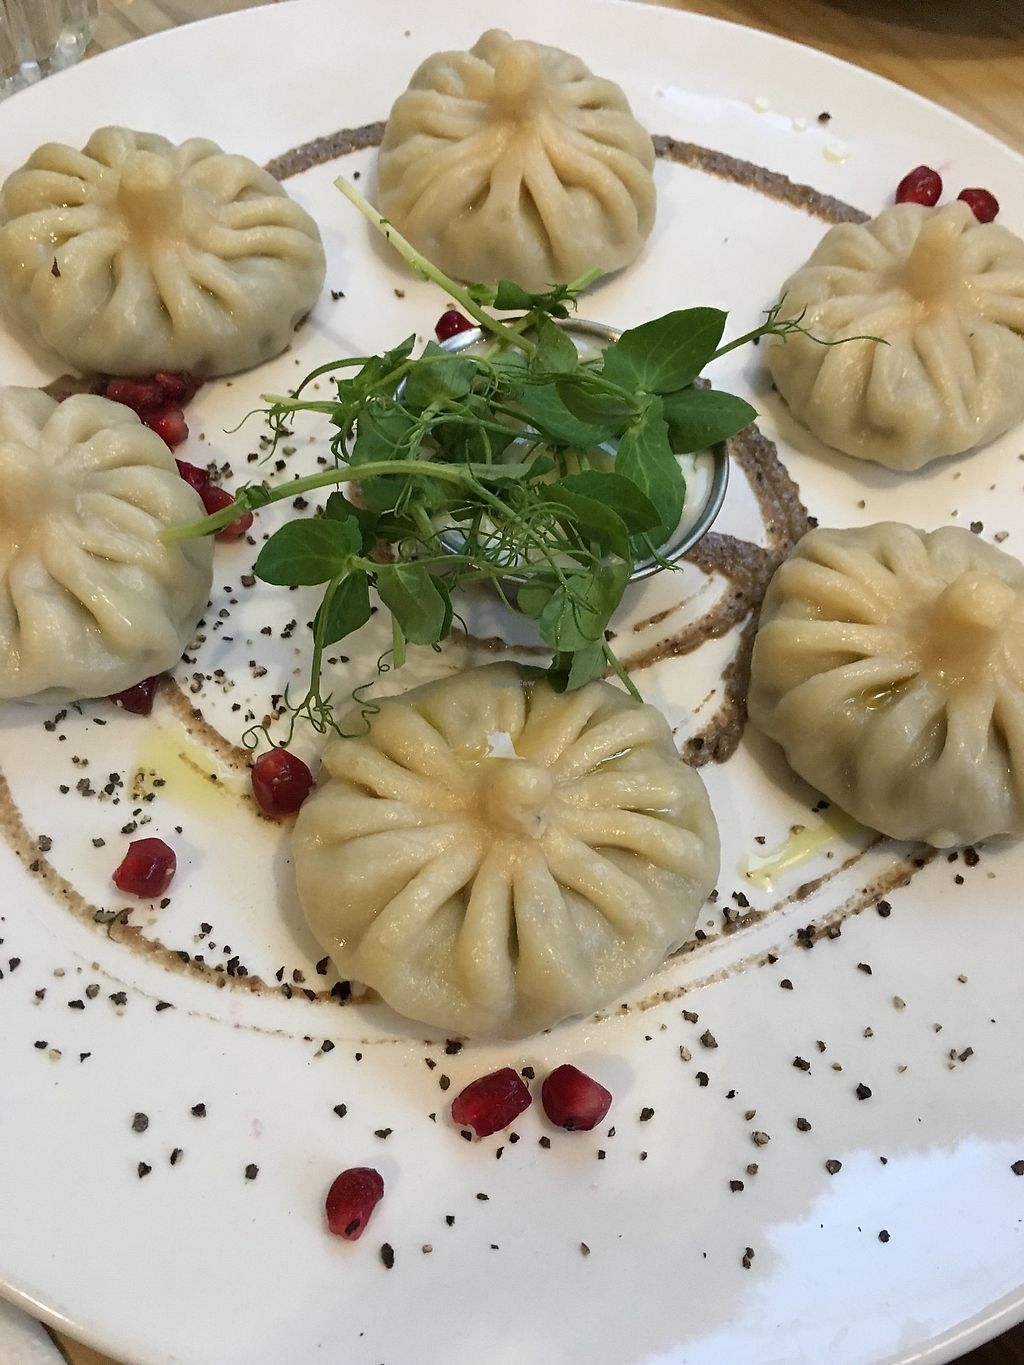 "Photo of Nanuchka  by <a href=""/members/profile/Laurenn"">Laurenn</a> <br/>Mushroom Dumplings  <br/> February 2, 2018  - <a href='/contact/abuse/image/45119/354080'>Report</a>"